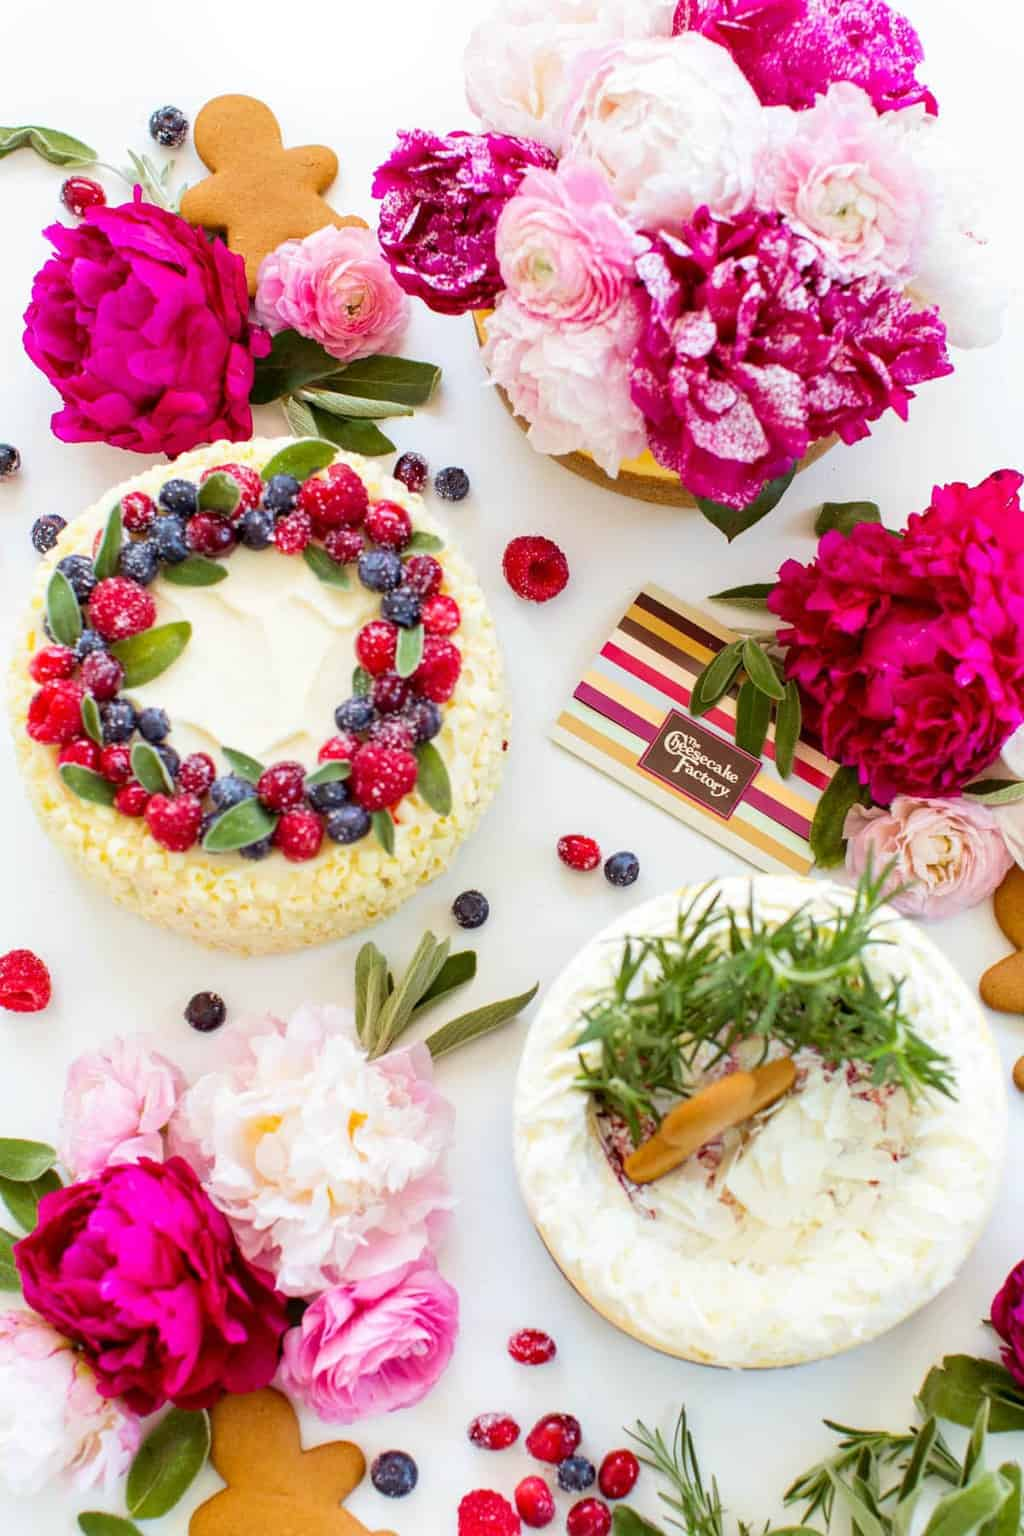 3 DIY Winter Cheesecake Toppers by Lifestyle Blogger Ashley Rose of Sugar & Cloth